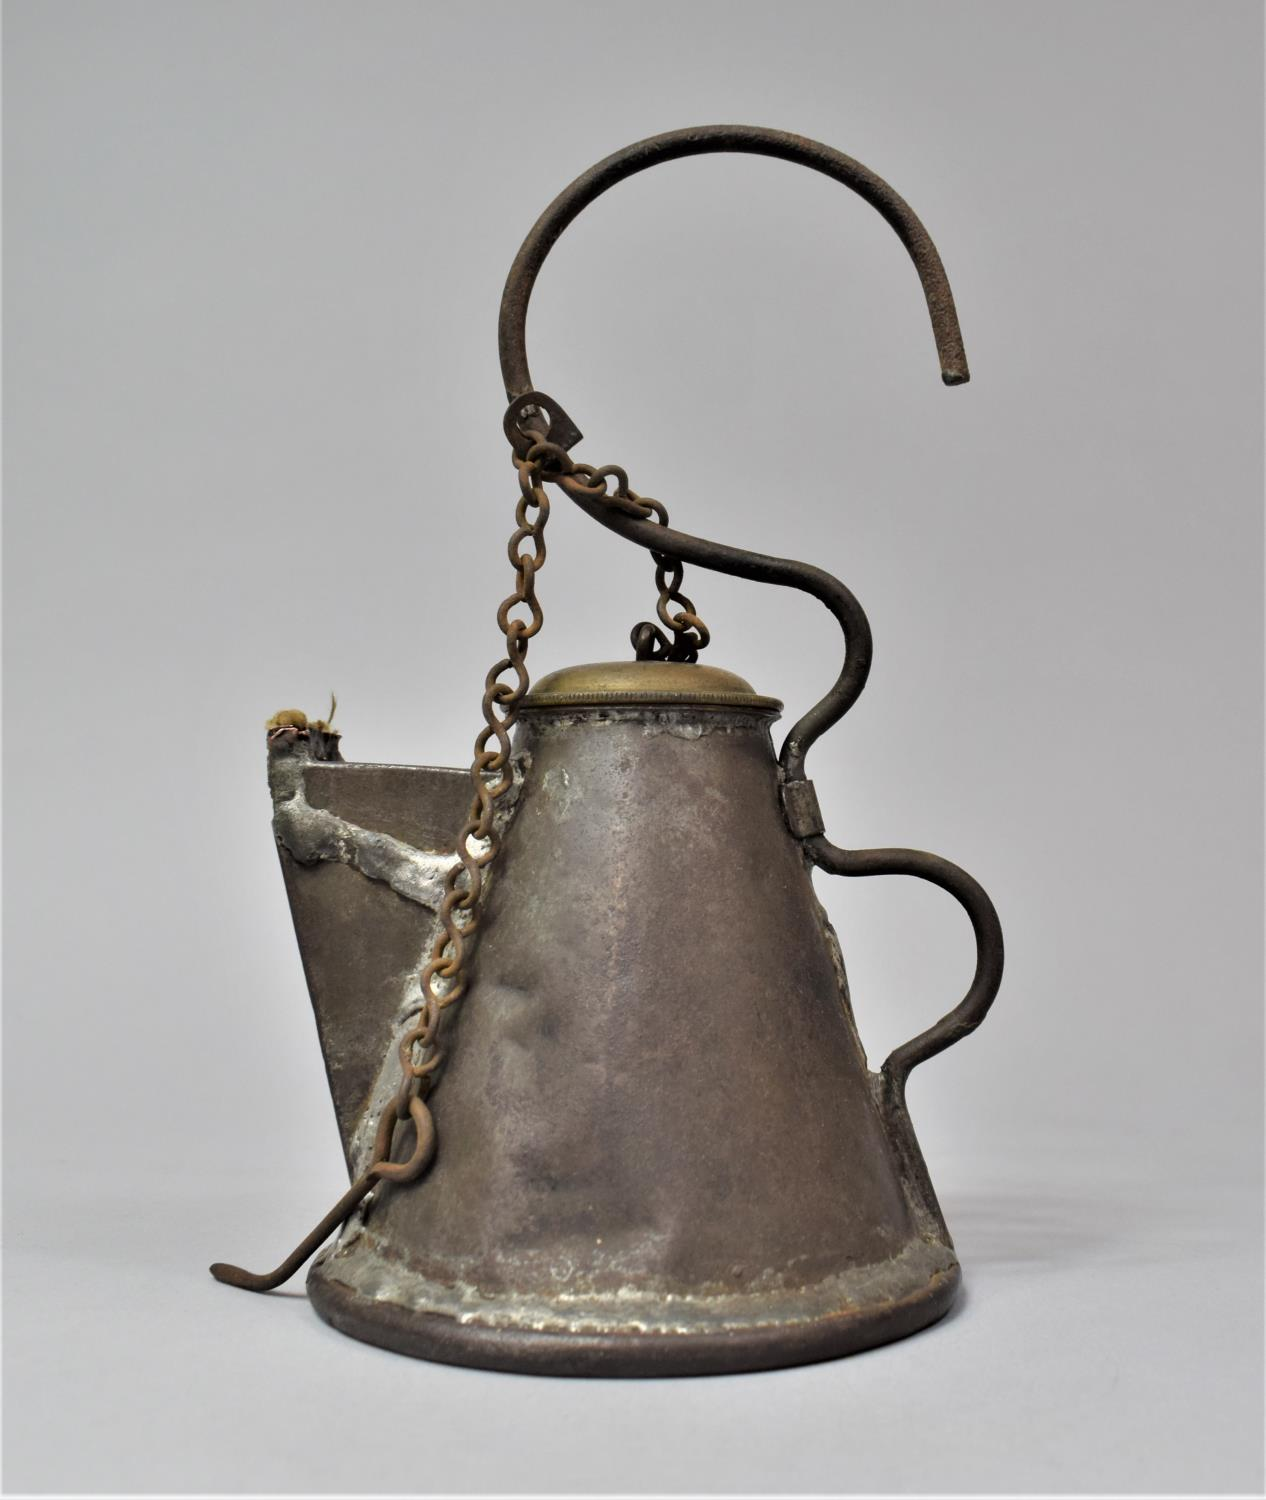 A Late 19th Century Scottish Miner's Coal Face Tallow Lamp of Teapot Form with Screw Off Lid, 21cm - Image 6 of 7